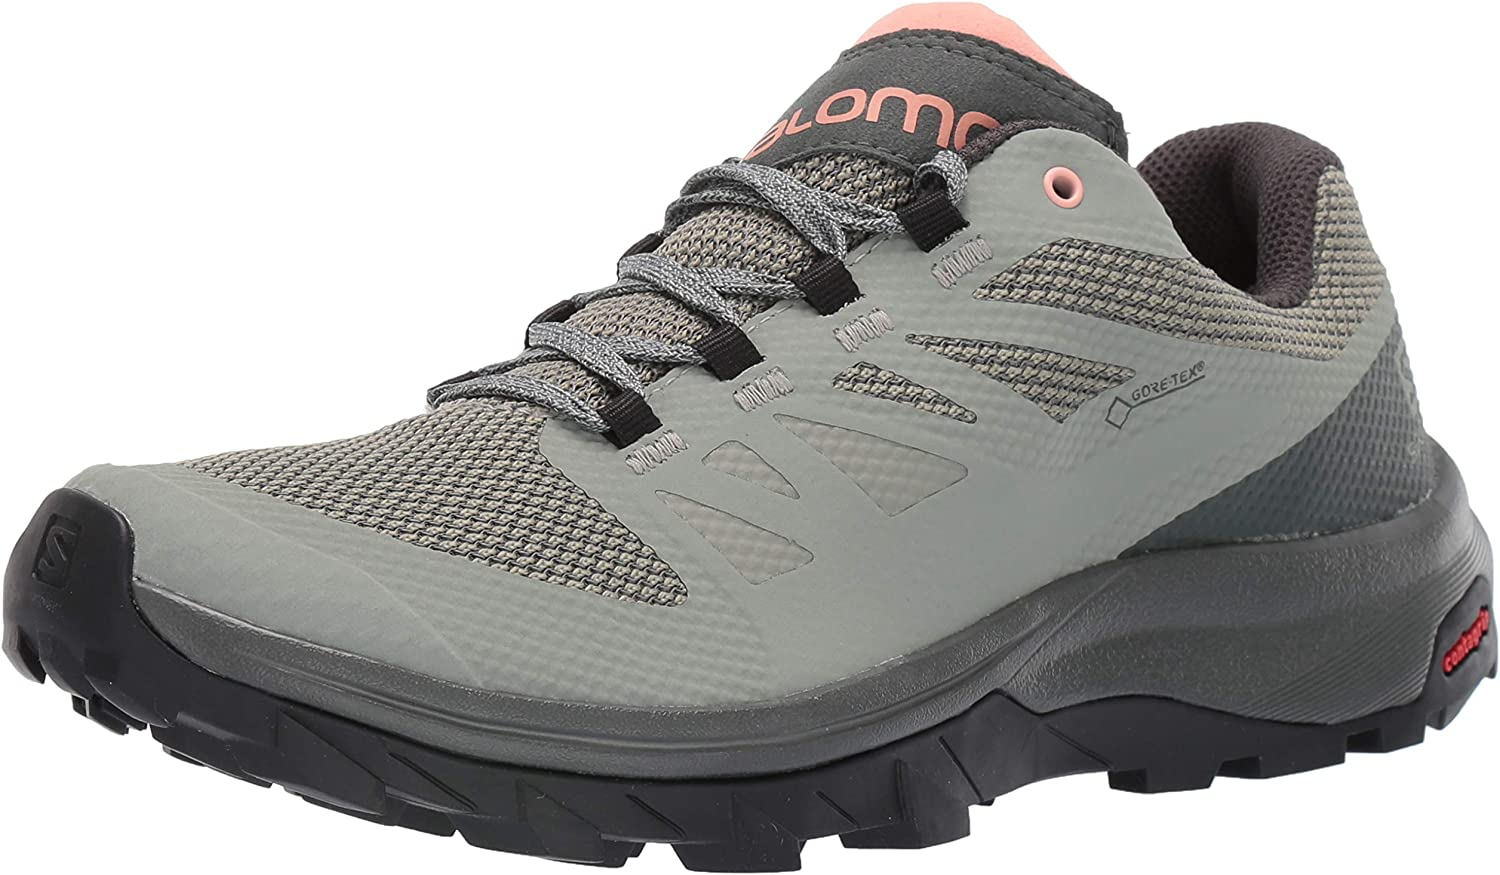 salomon women's outline gtx hiking shoes review hiking